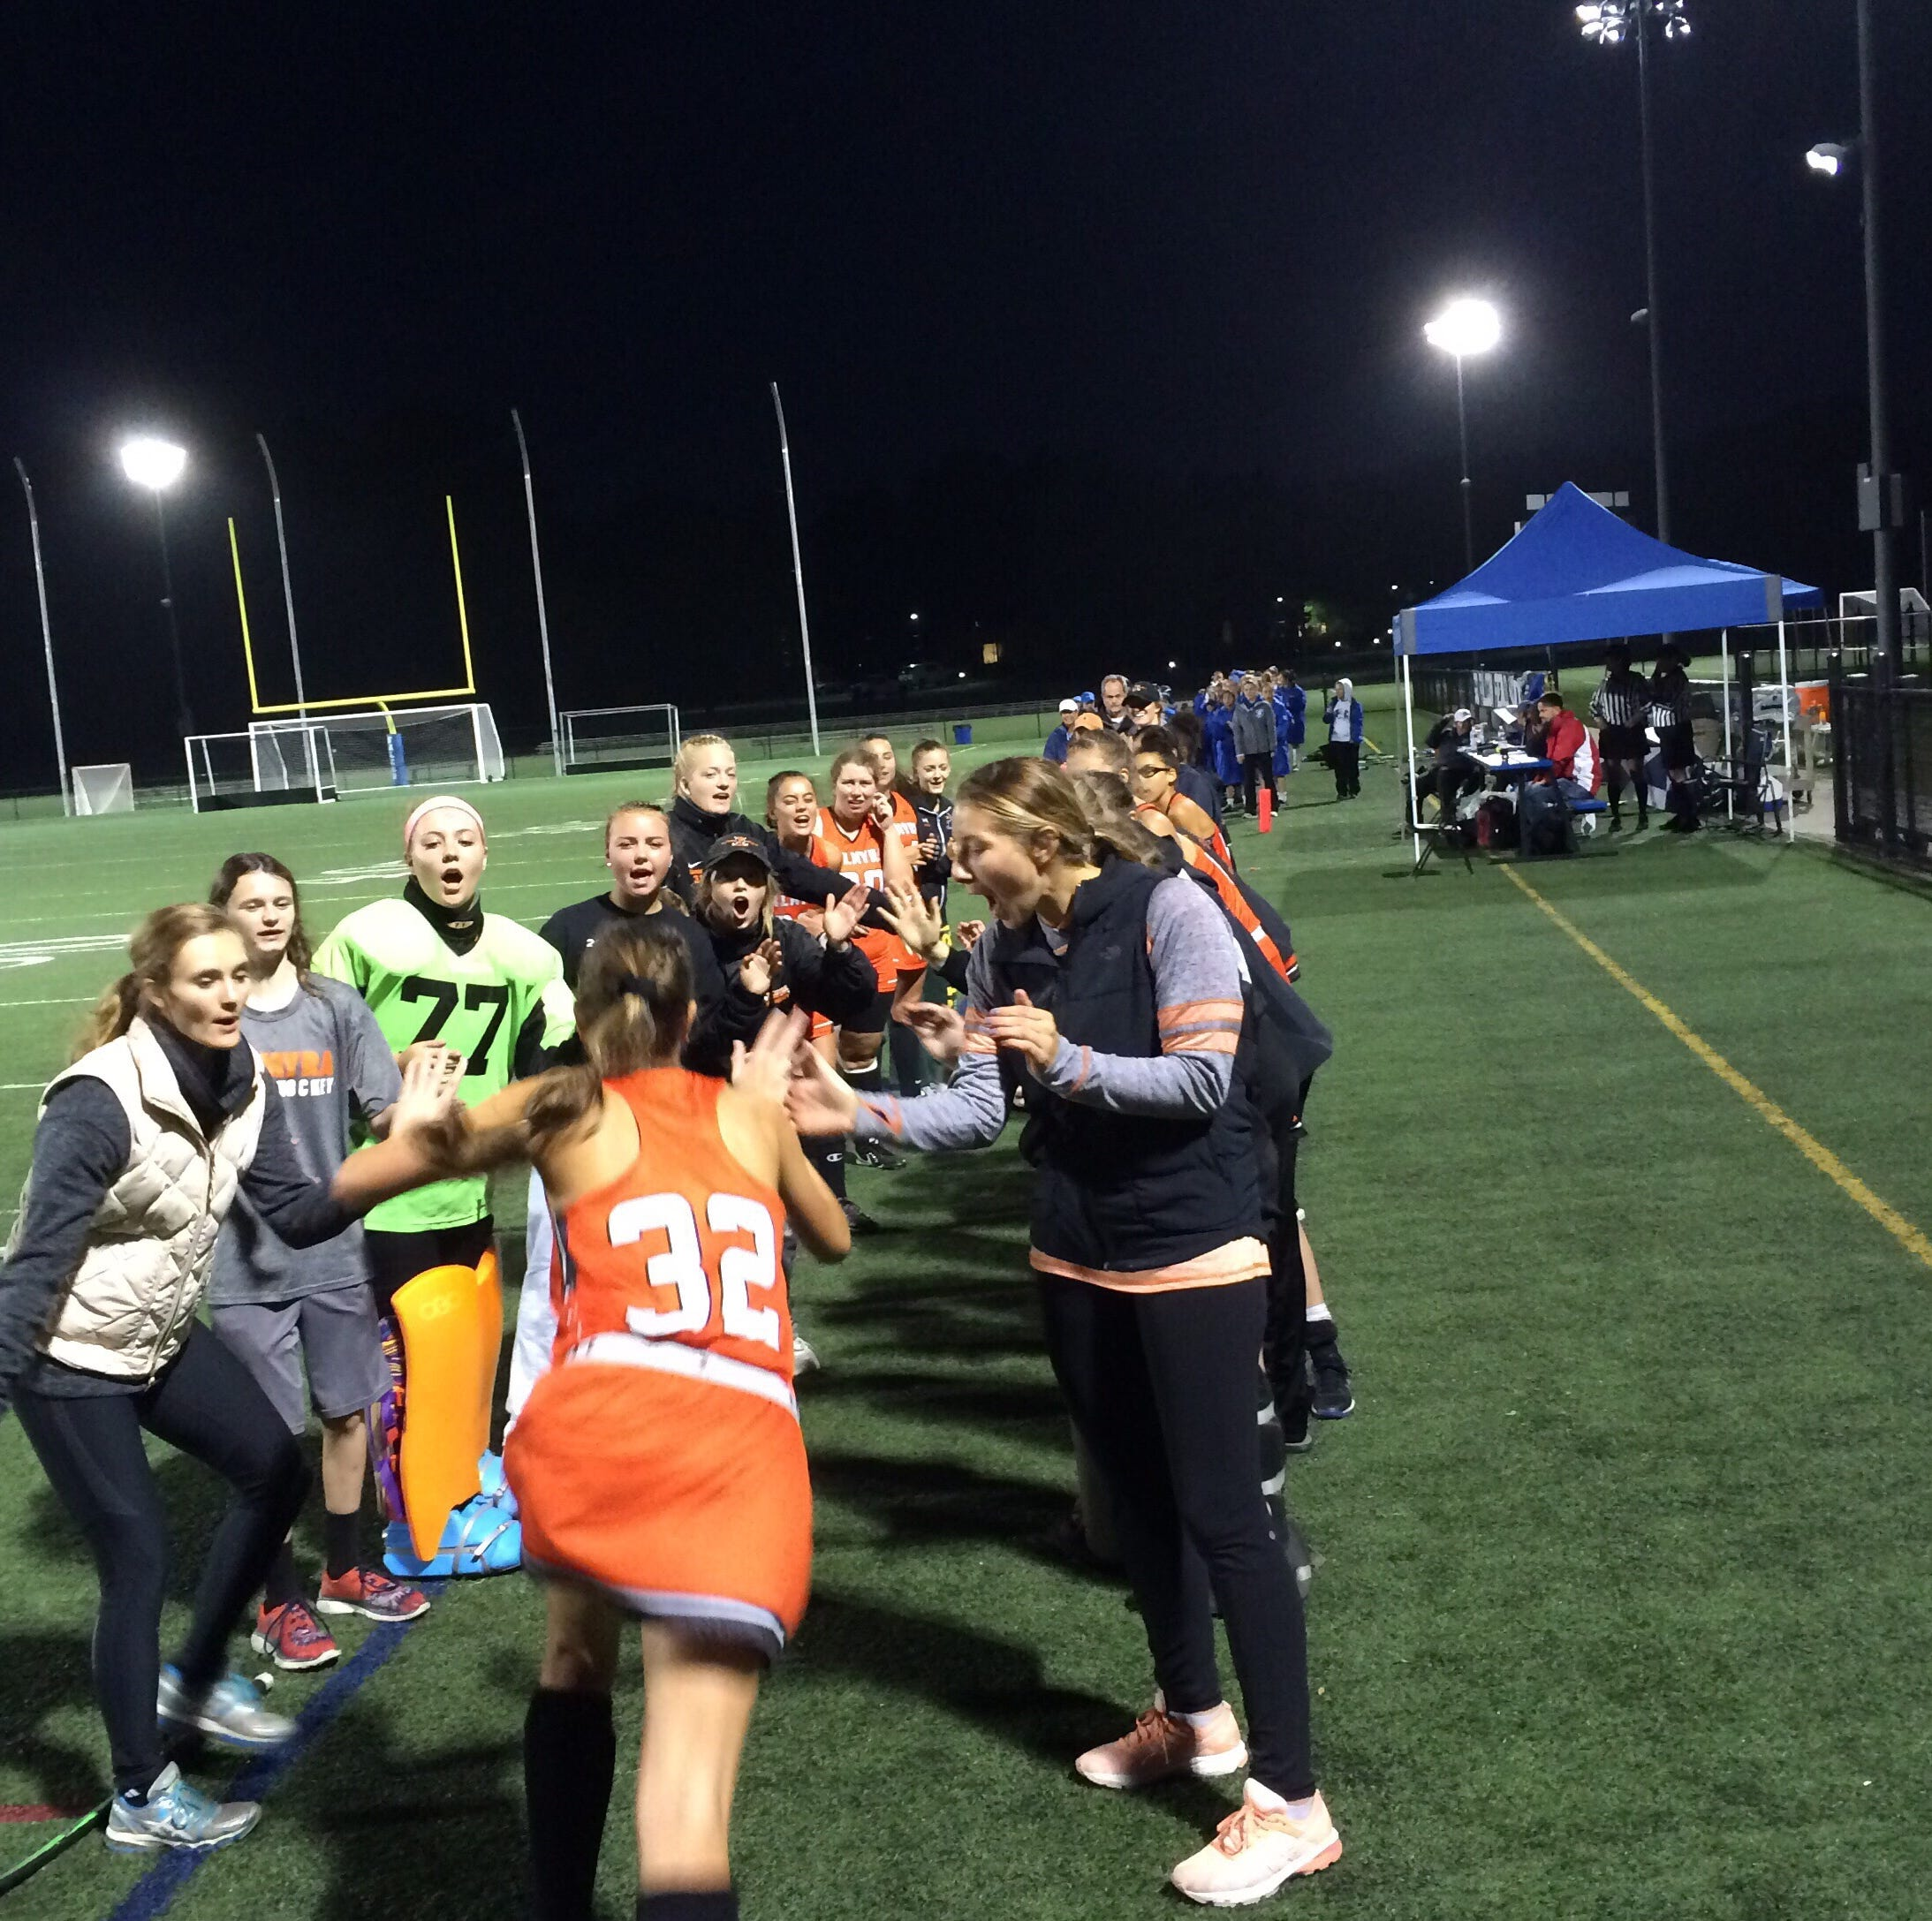 Palmyra falls to Lower Dauphin in field hockey showdown